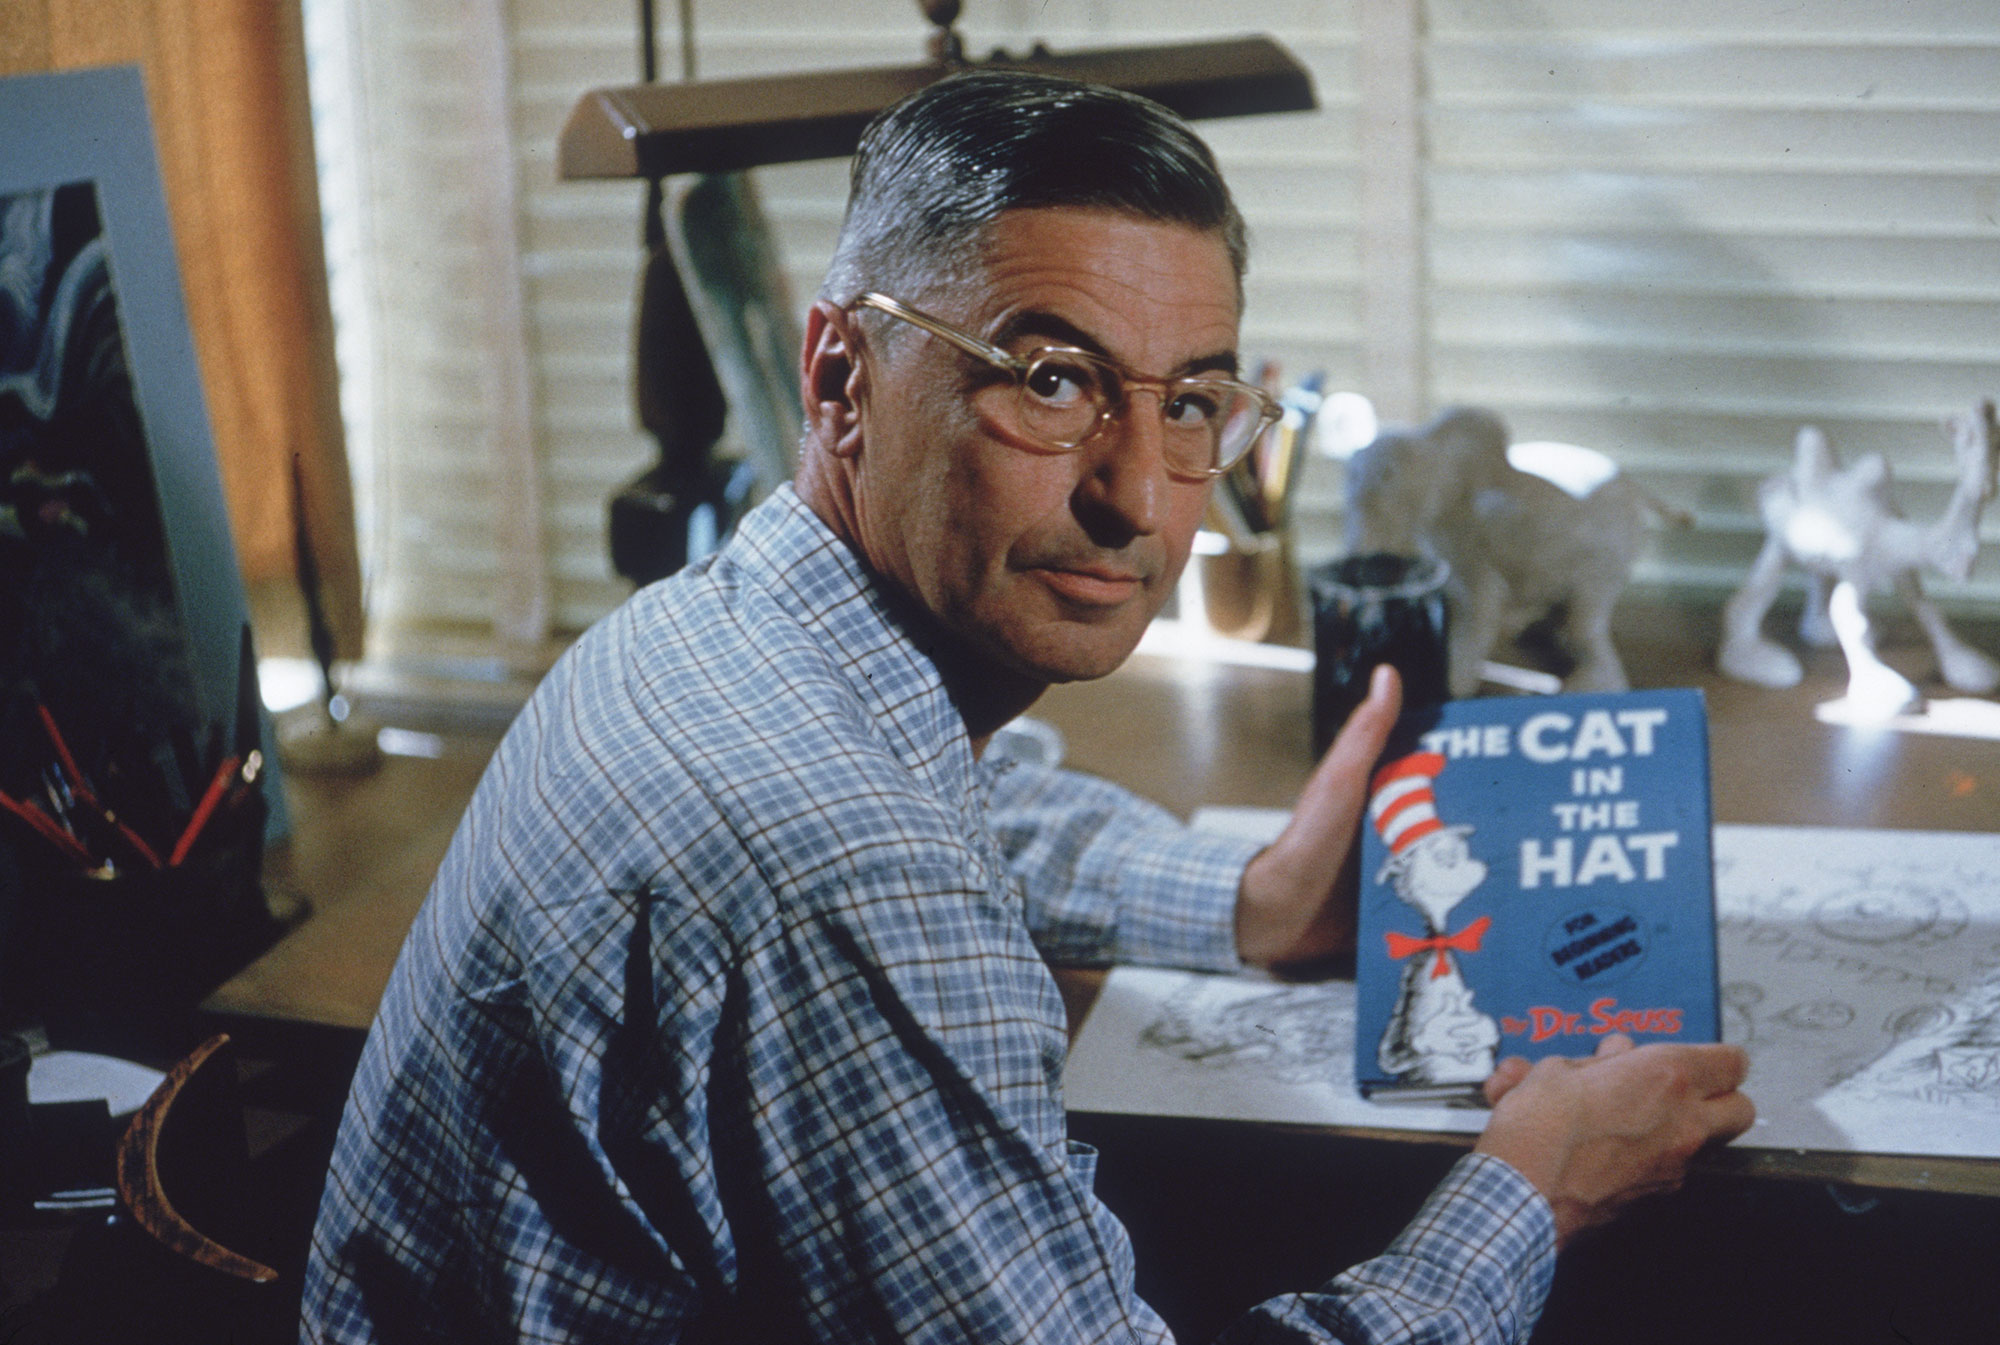 Dr. Seuss Books Like Horton Hears a Who! Branded Racist and Problematic in New Study